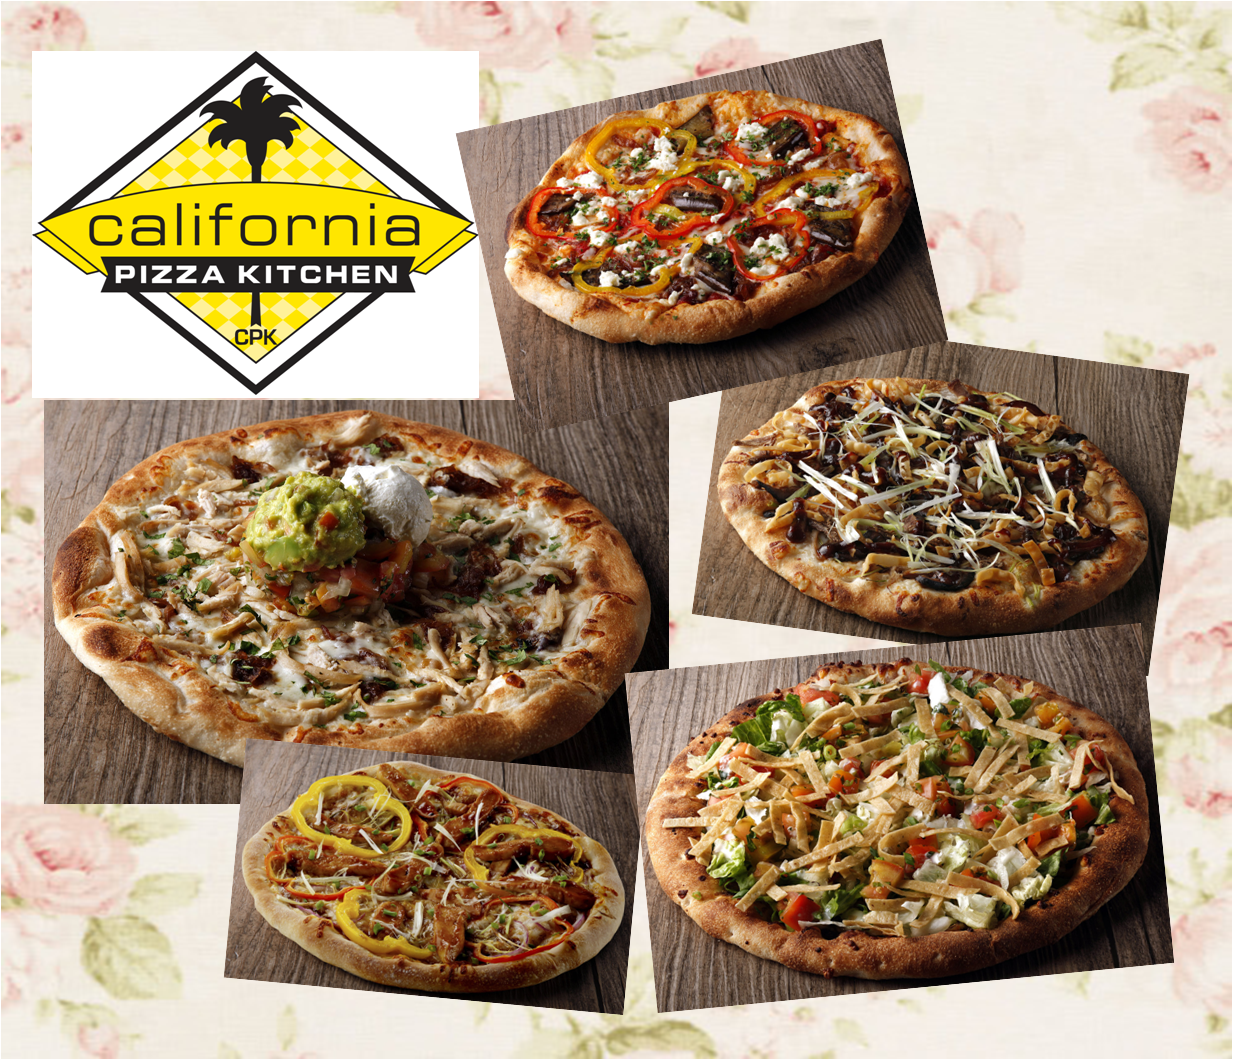 GASTRONOMY by Joy: Vintage Pizzas Rule in California Pizza Kitchen